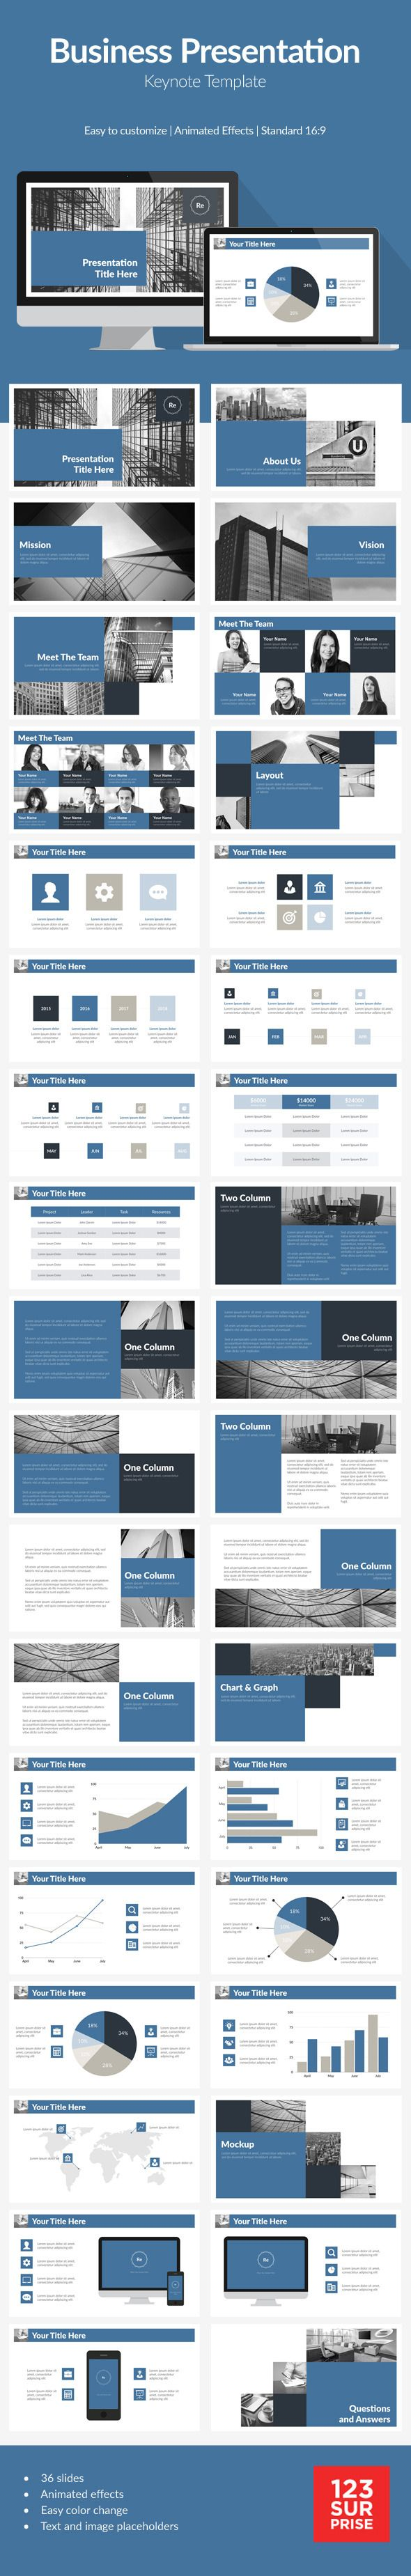 corporate business presentation template also best ppt images on pinterest keynote rh - Powerpoint Design Ideas